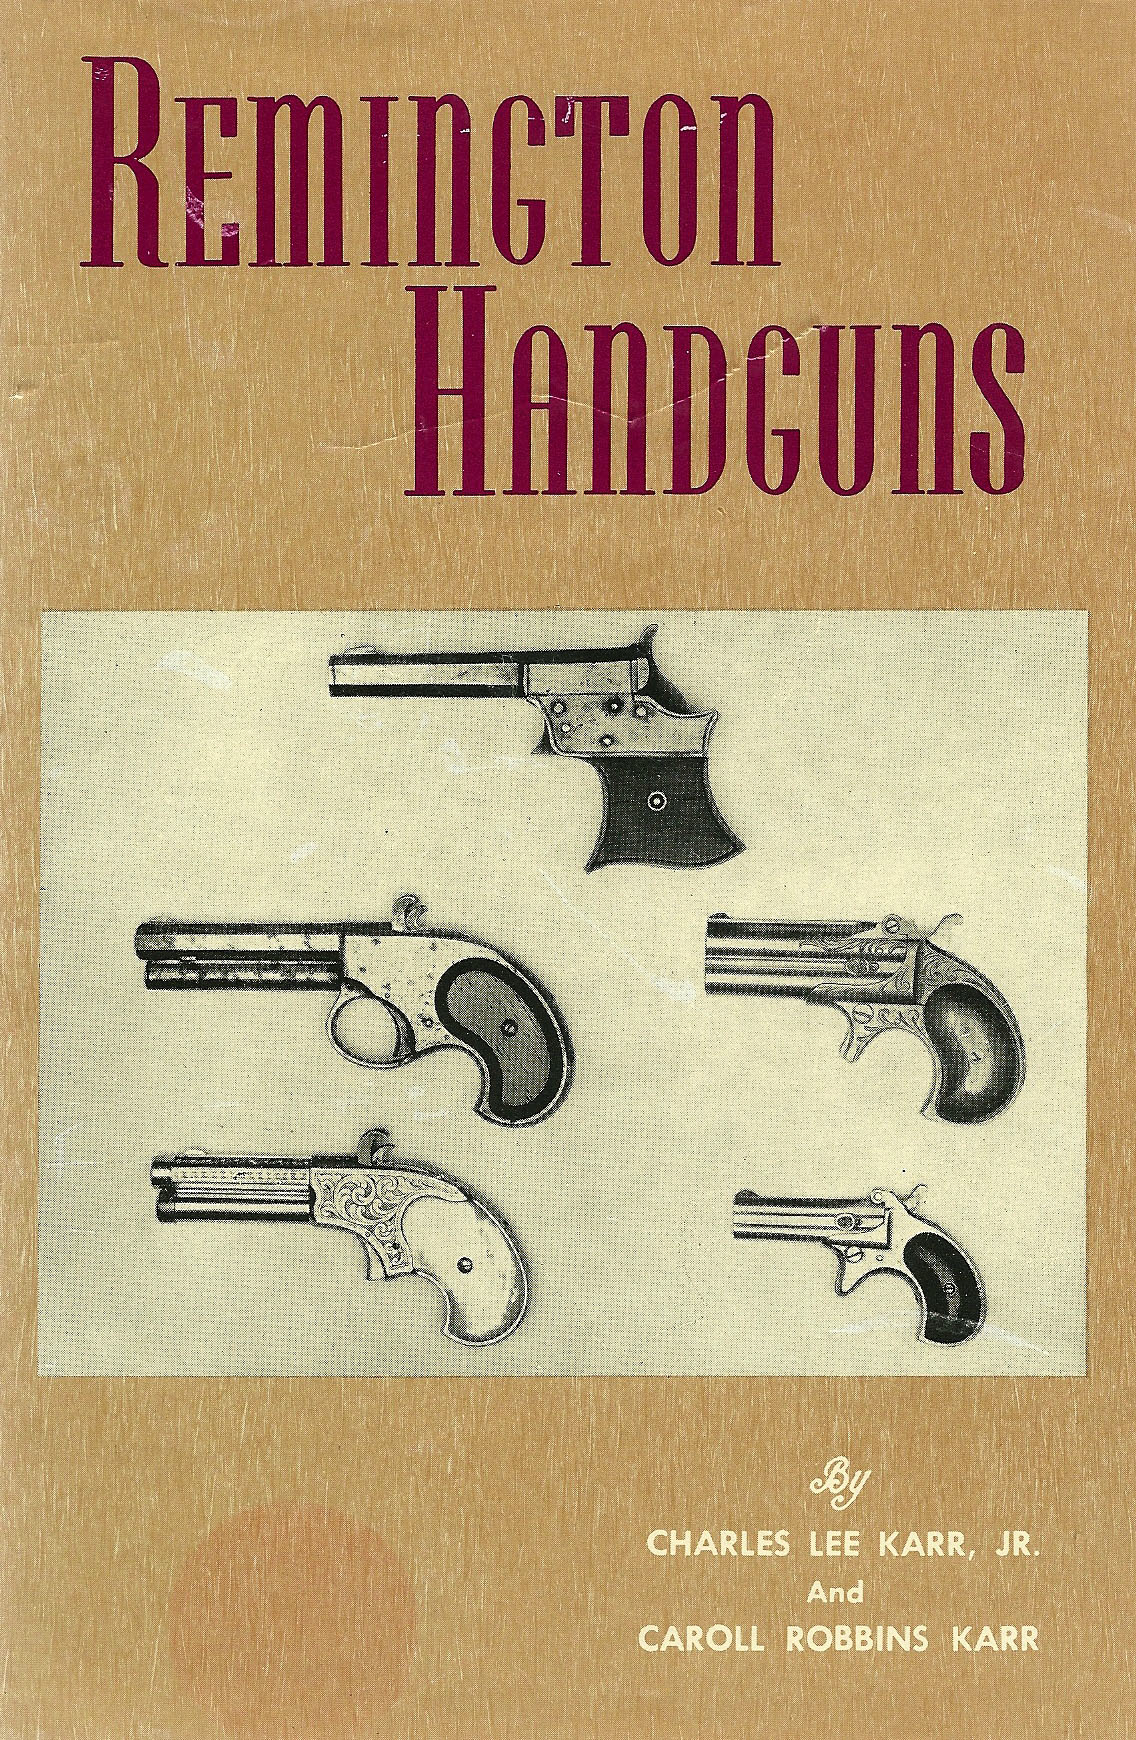 Photo of Remington Handguns - Karr